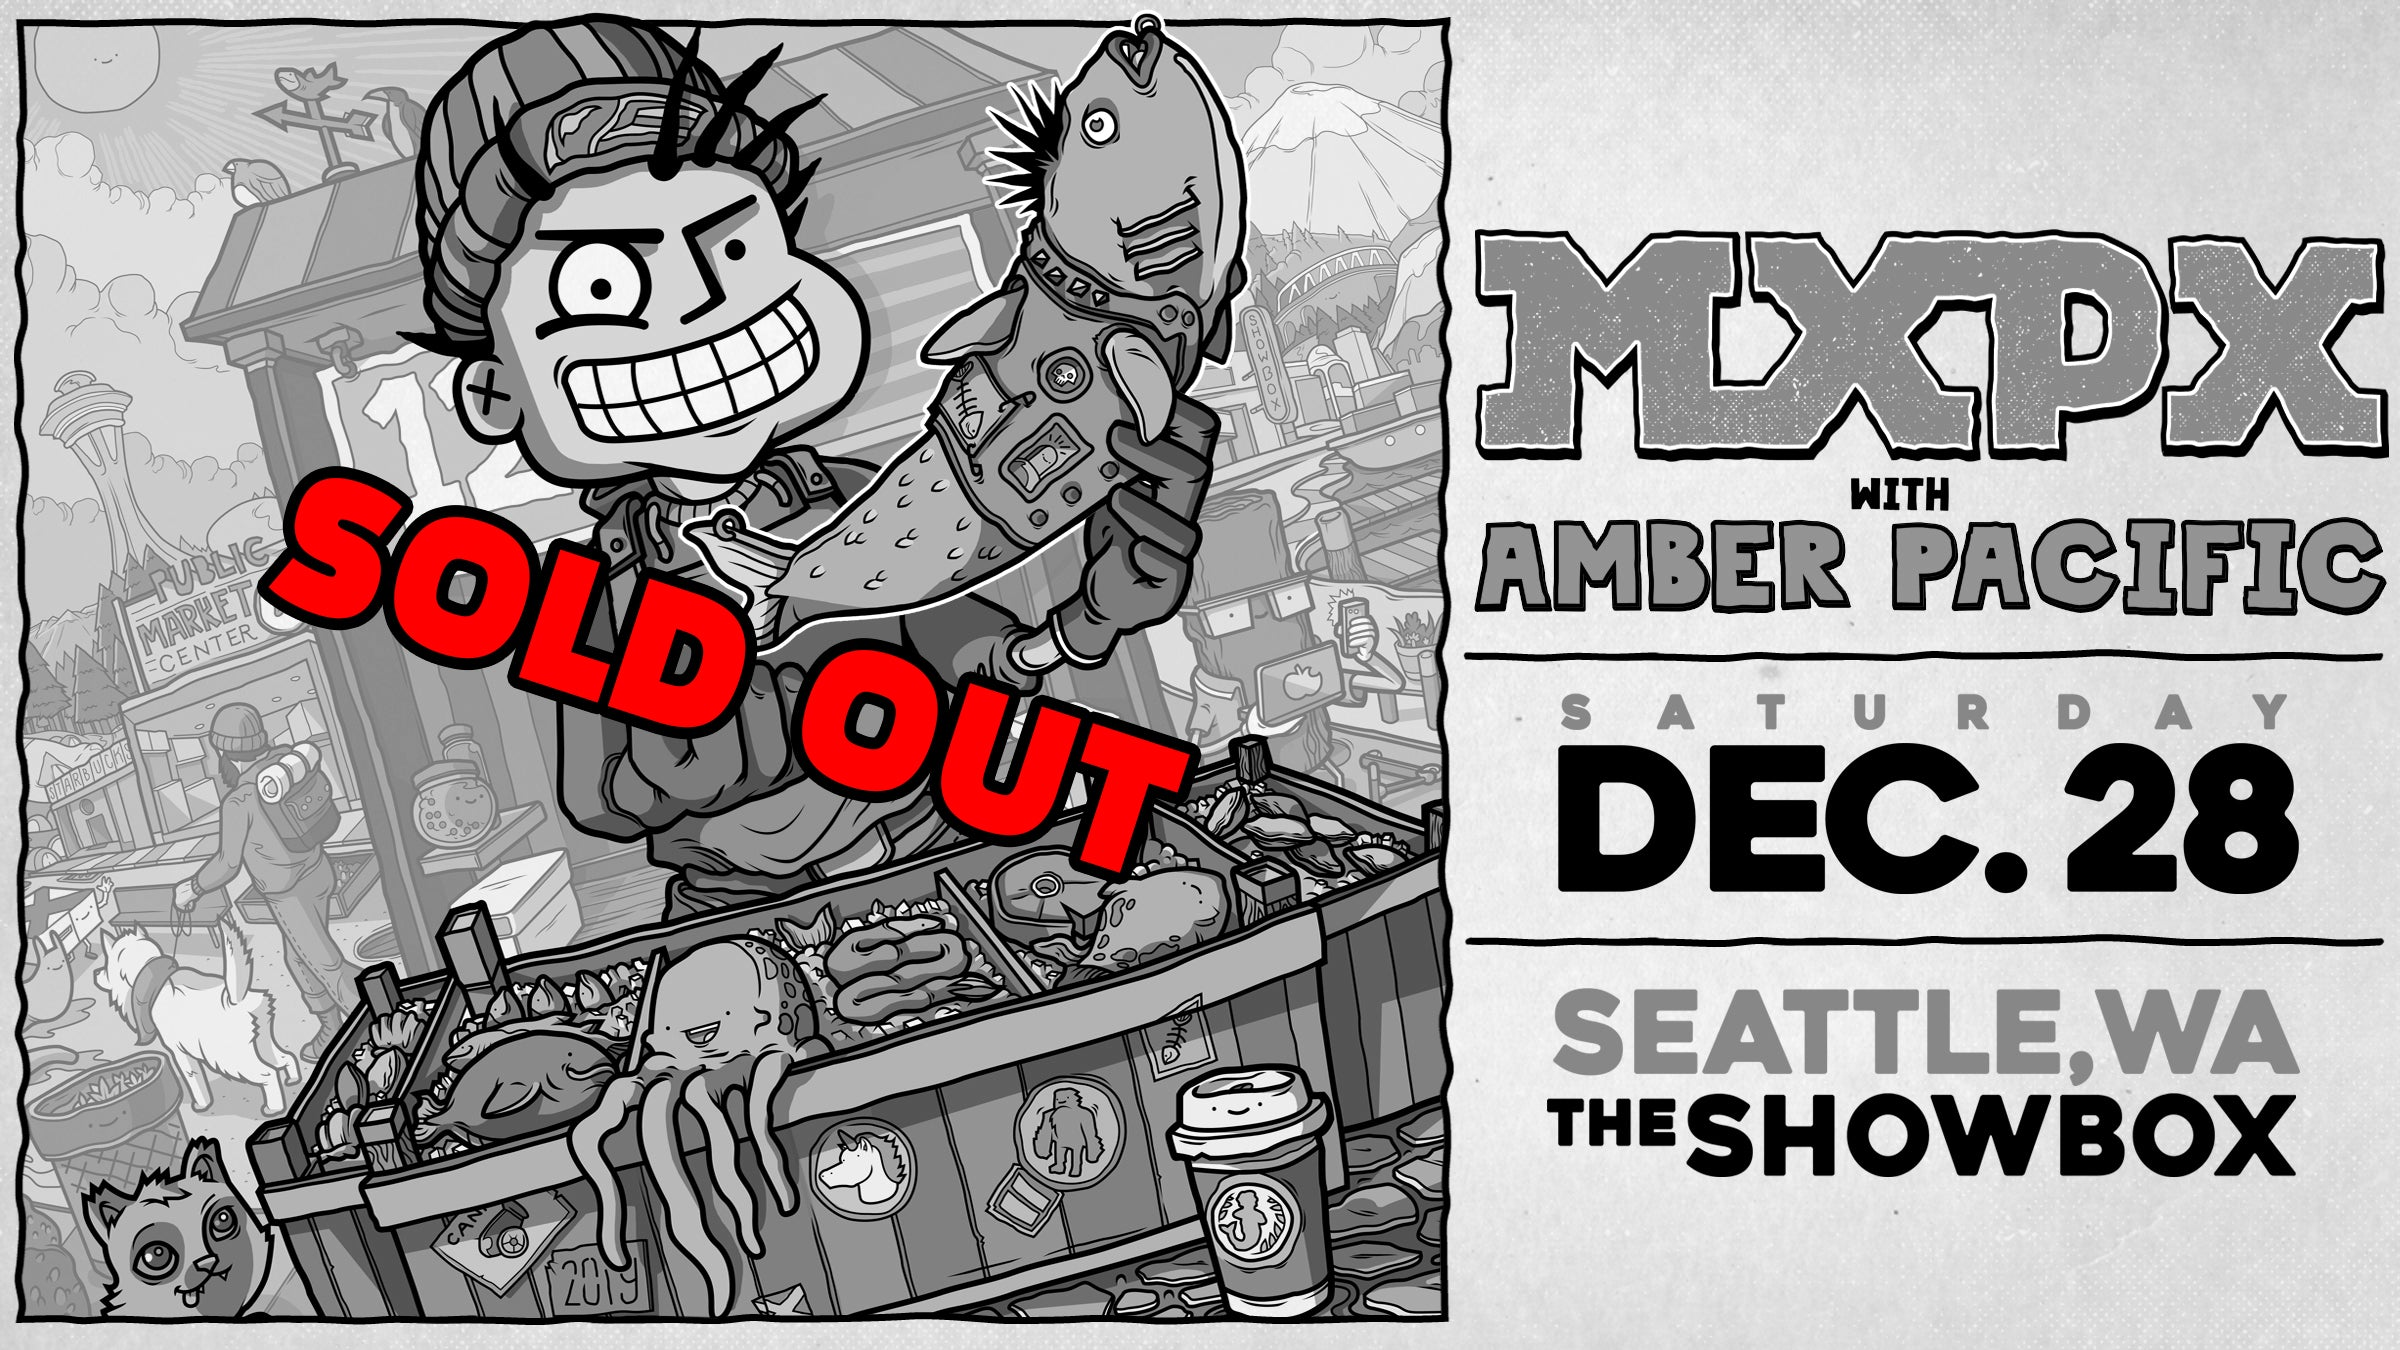 Saturday, DECEMBER 28th - Showbox Presents MxPx w/ Amber Pacific SOLD OUT!